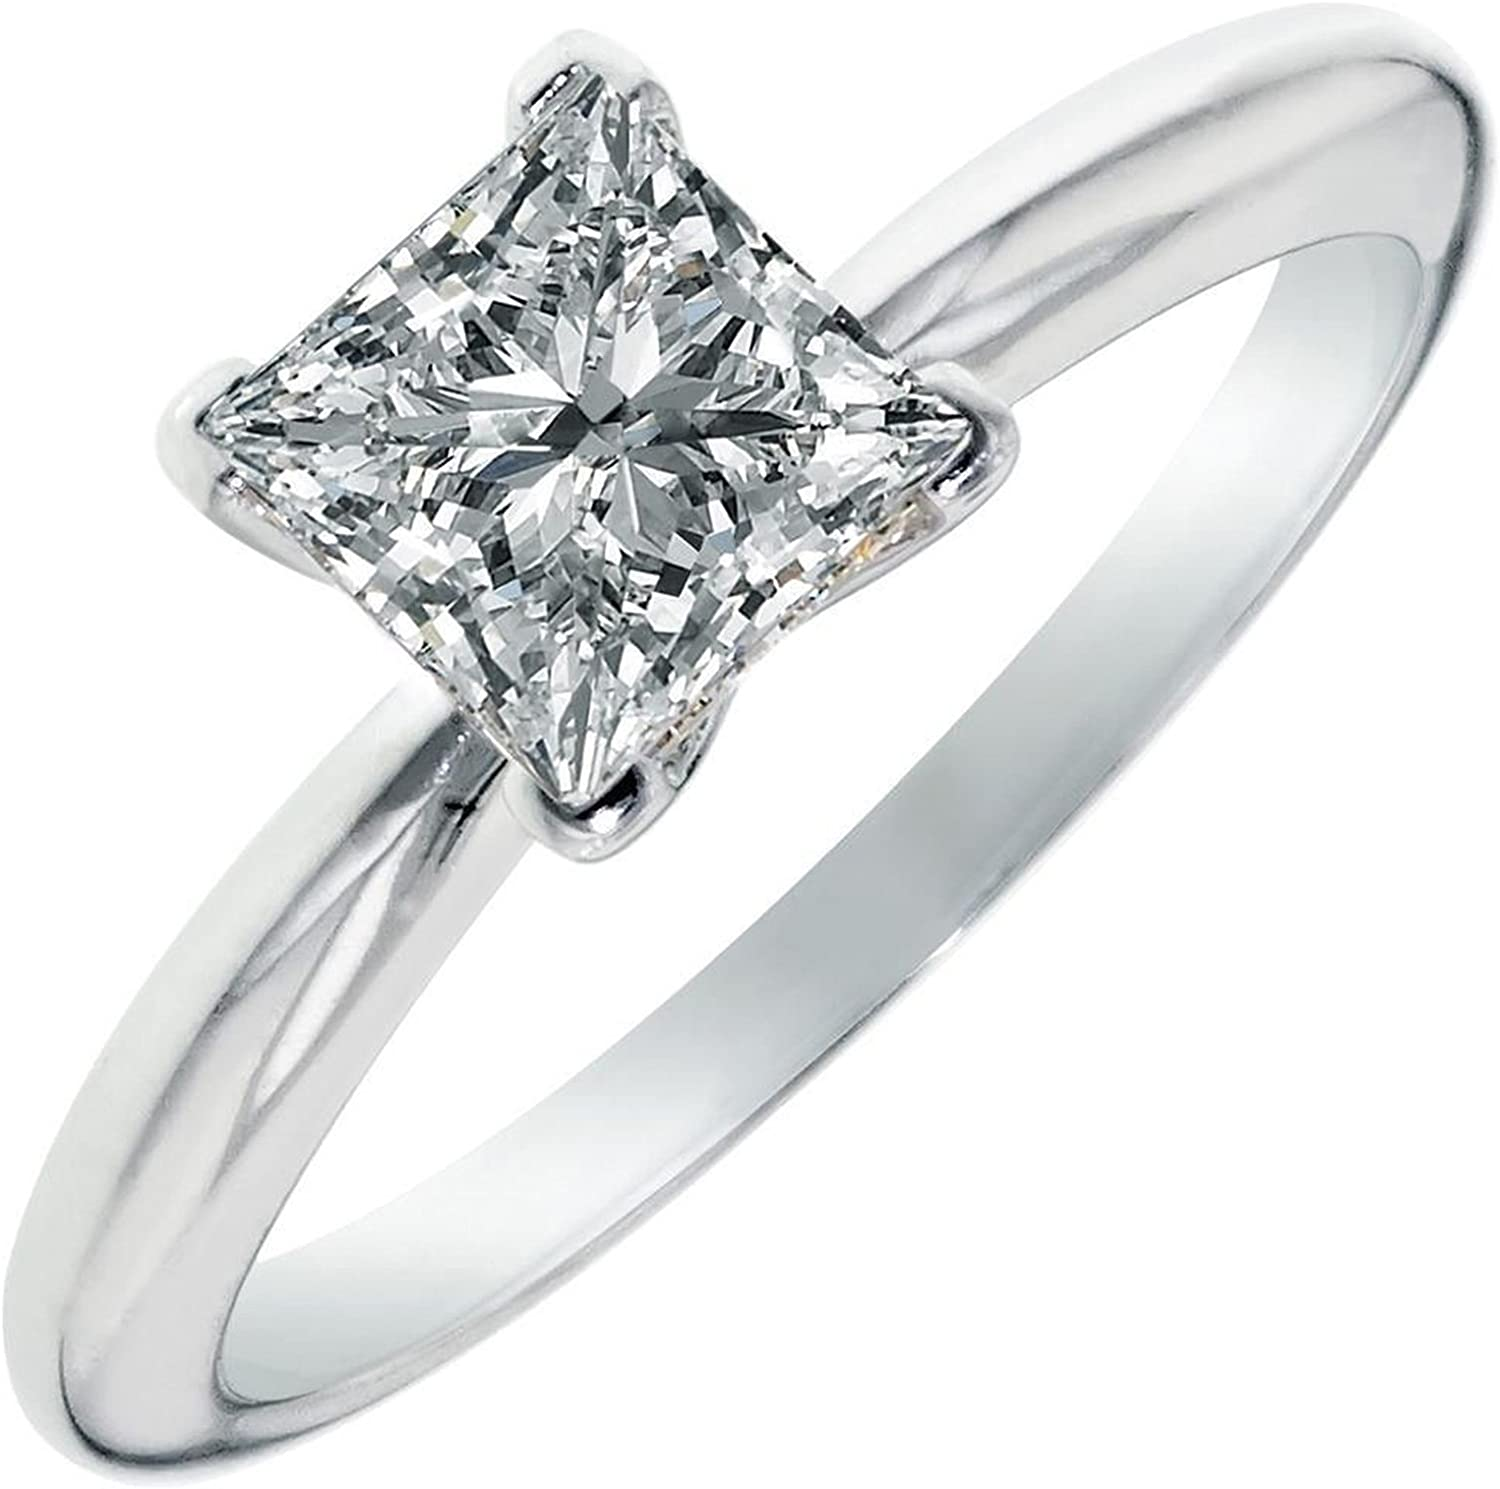 2.0 CT Princess brilliant Cut Simulated Diamond CZ Solitaire Engagement Wedding Ring 14k White Gold